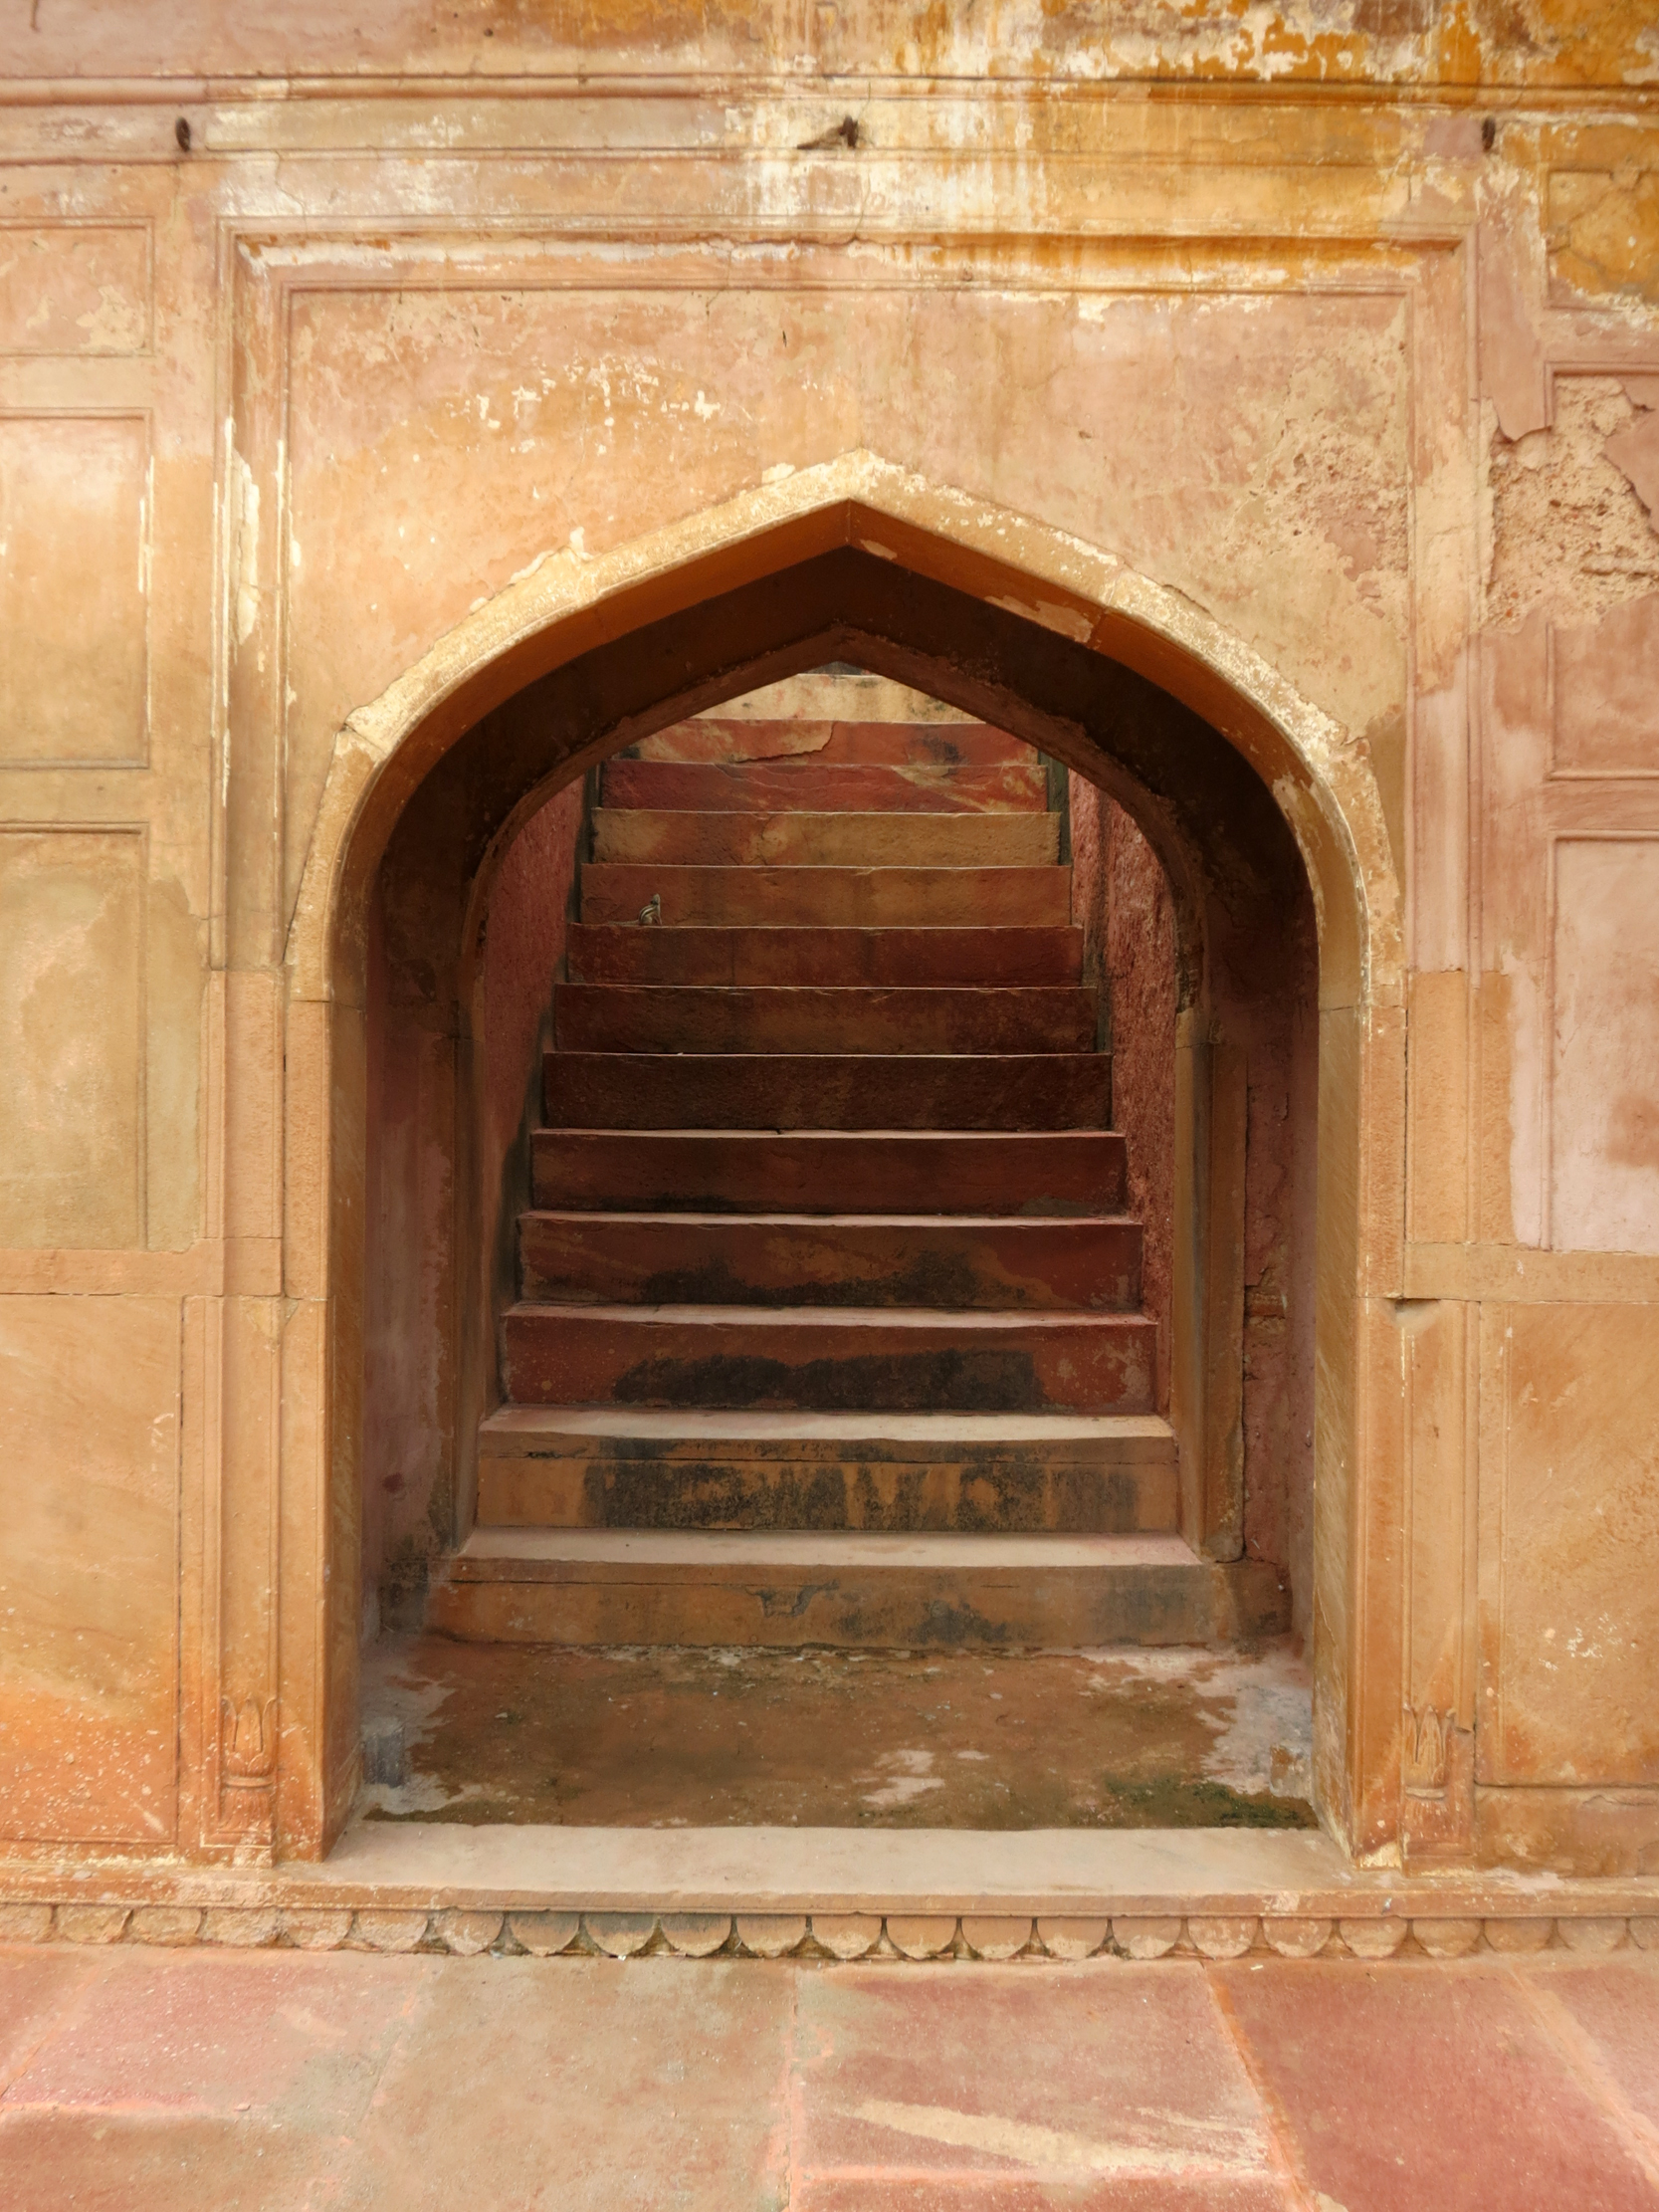 File:Safdarjung Tomb - staircase.JPG - Wikimedia Commons